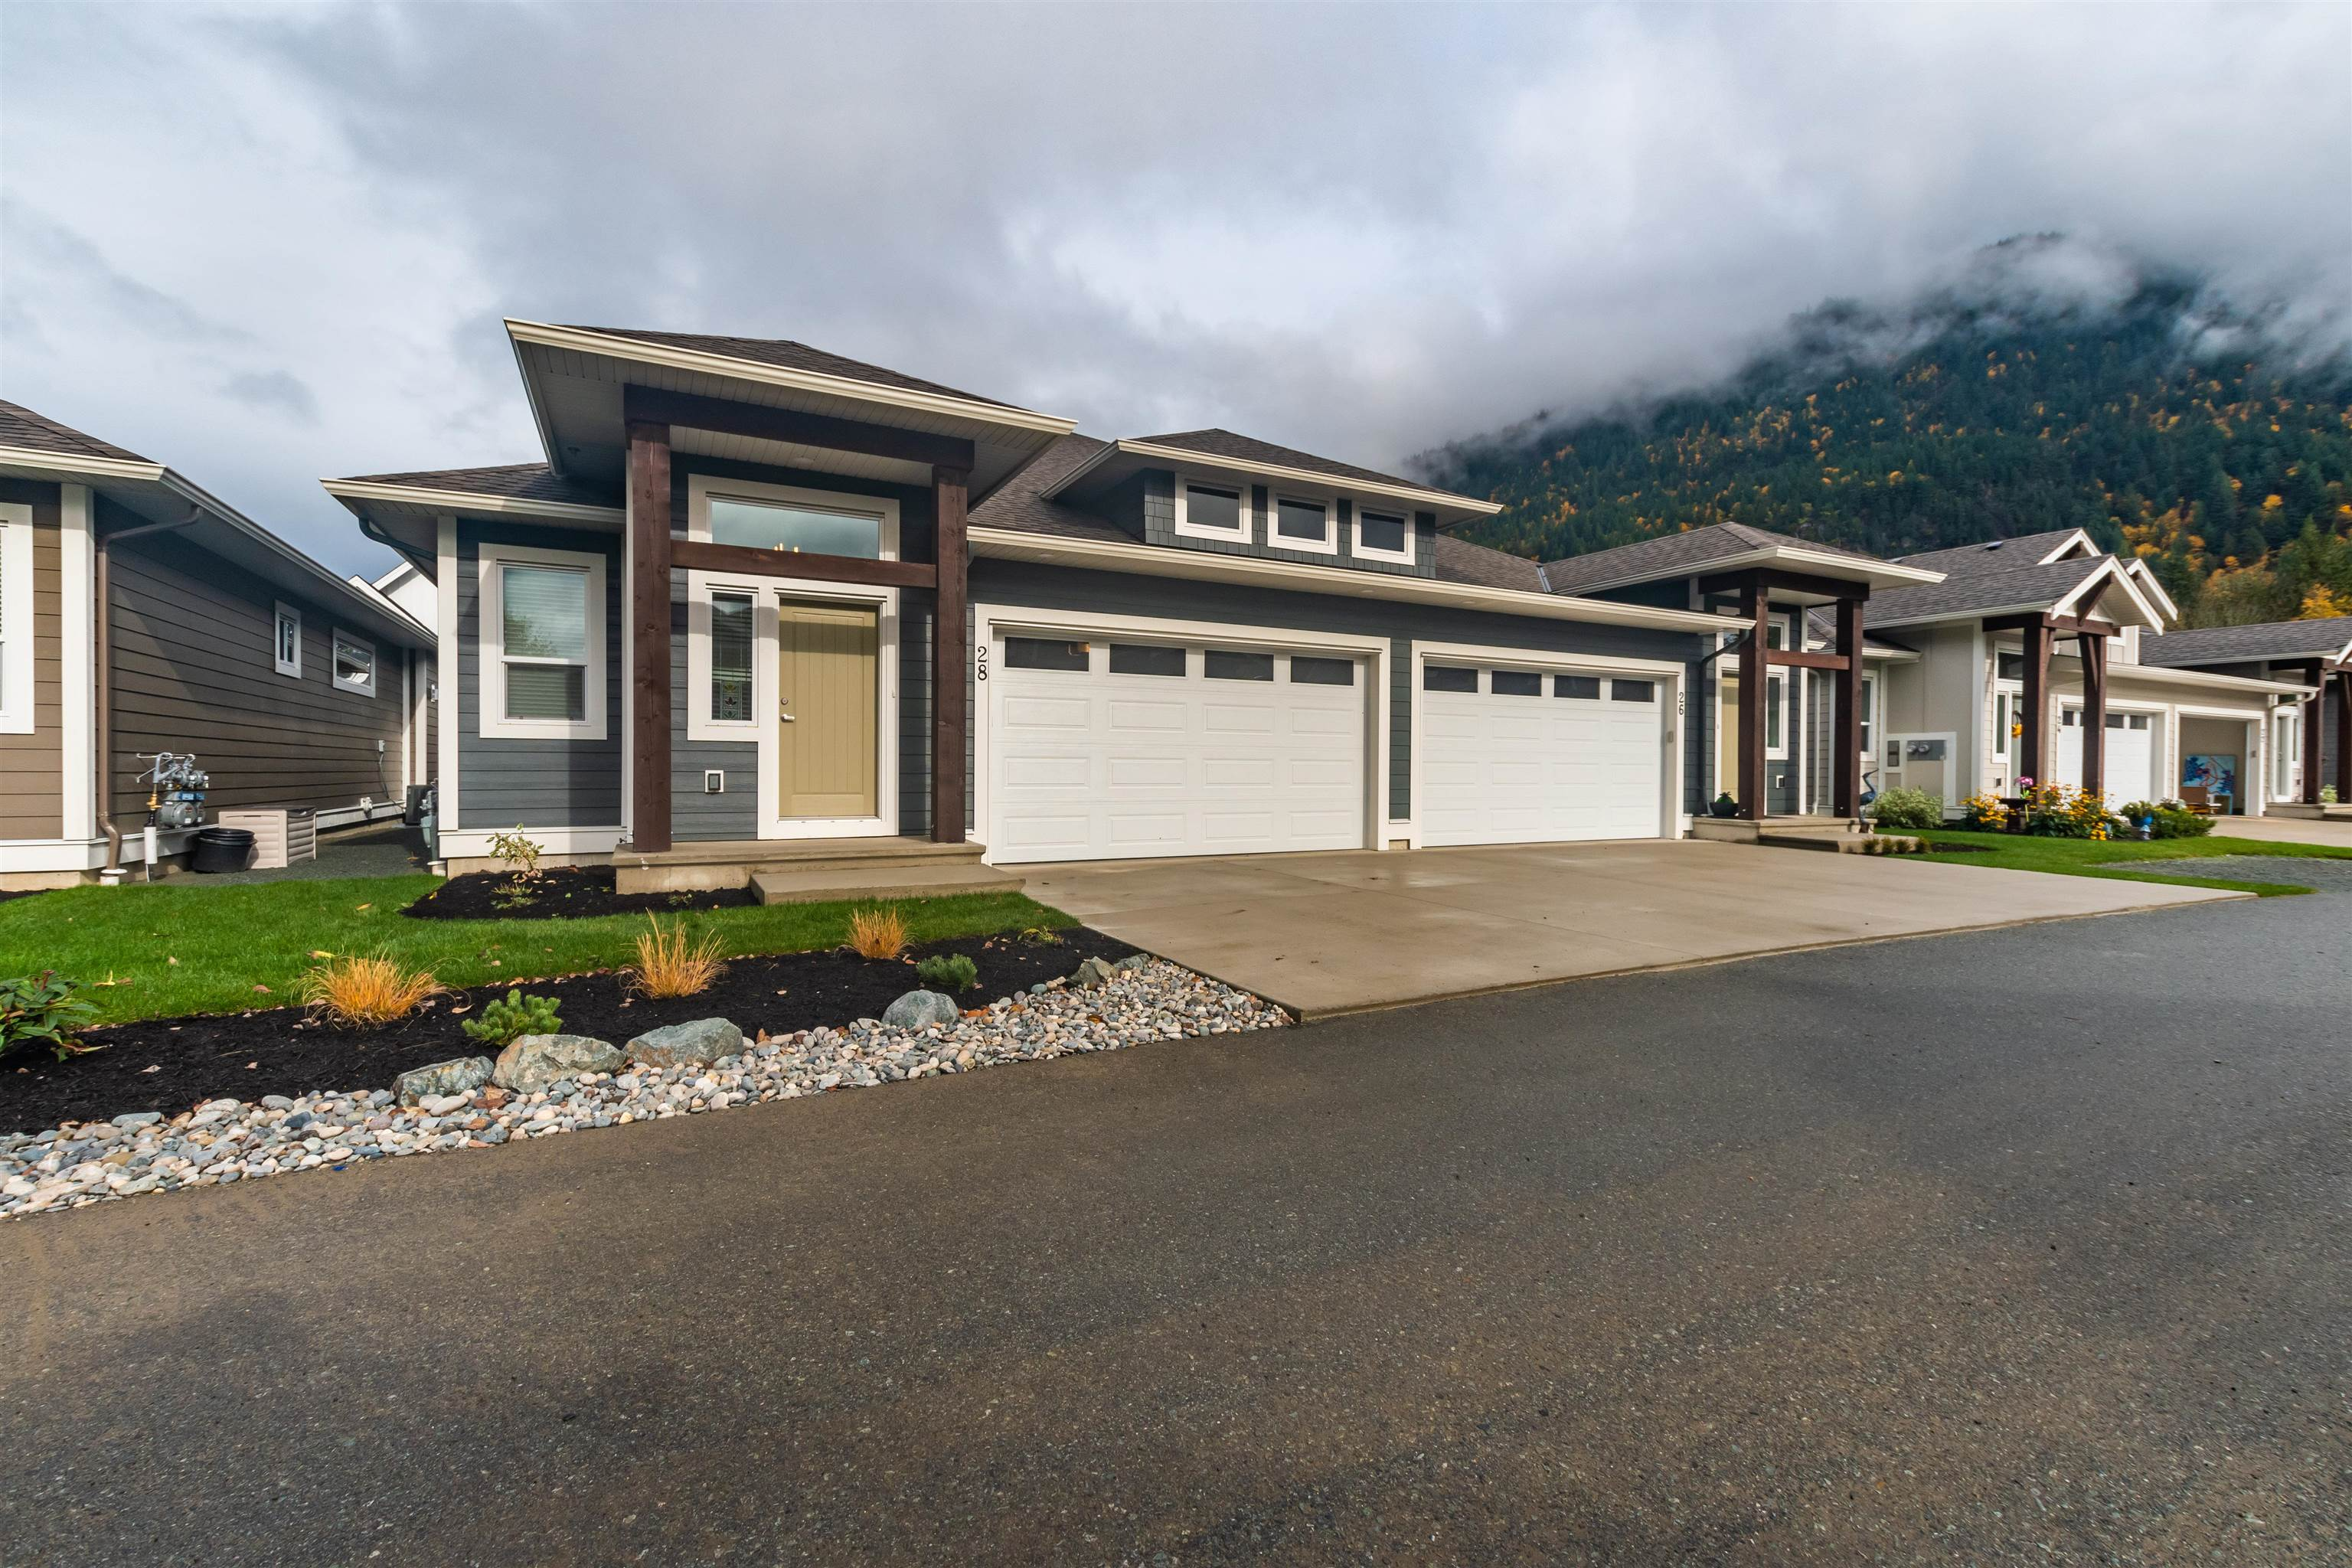 28 628 MCCOMBS DRIVE - Harrison Hot Springs 1/2 Duplex for sale, 2 Bedrooms (R2627639) - #1